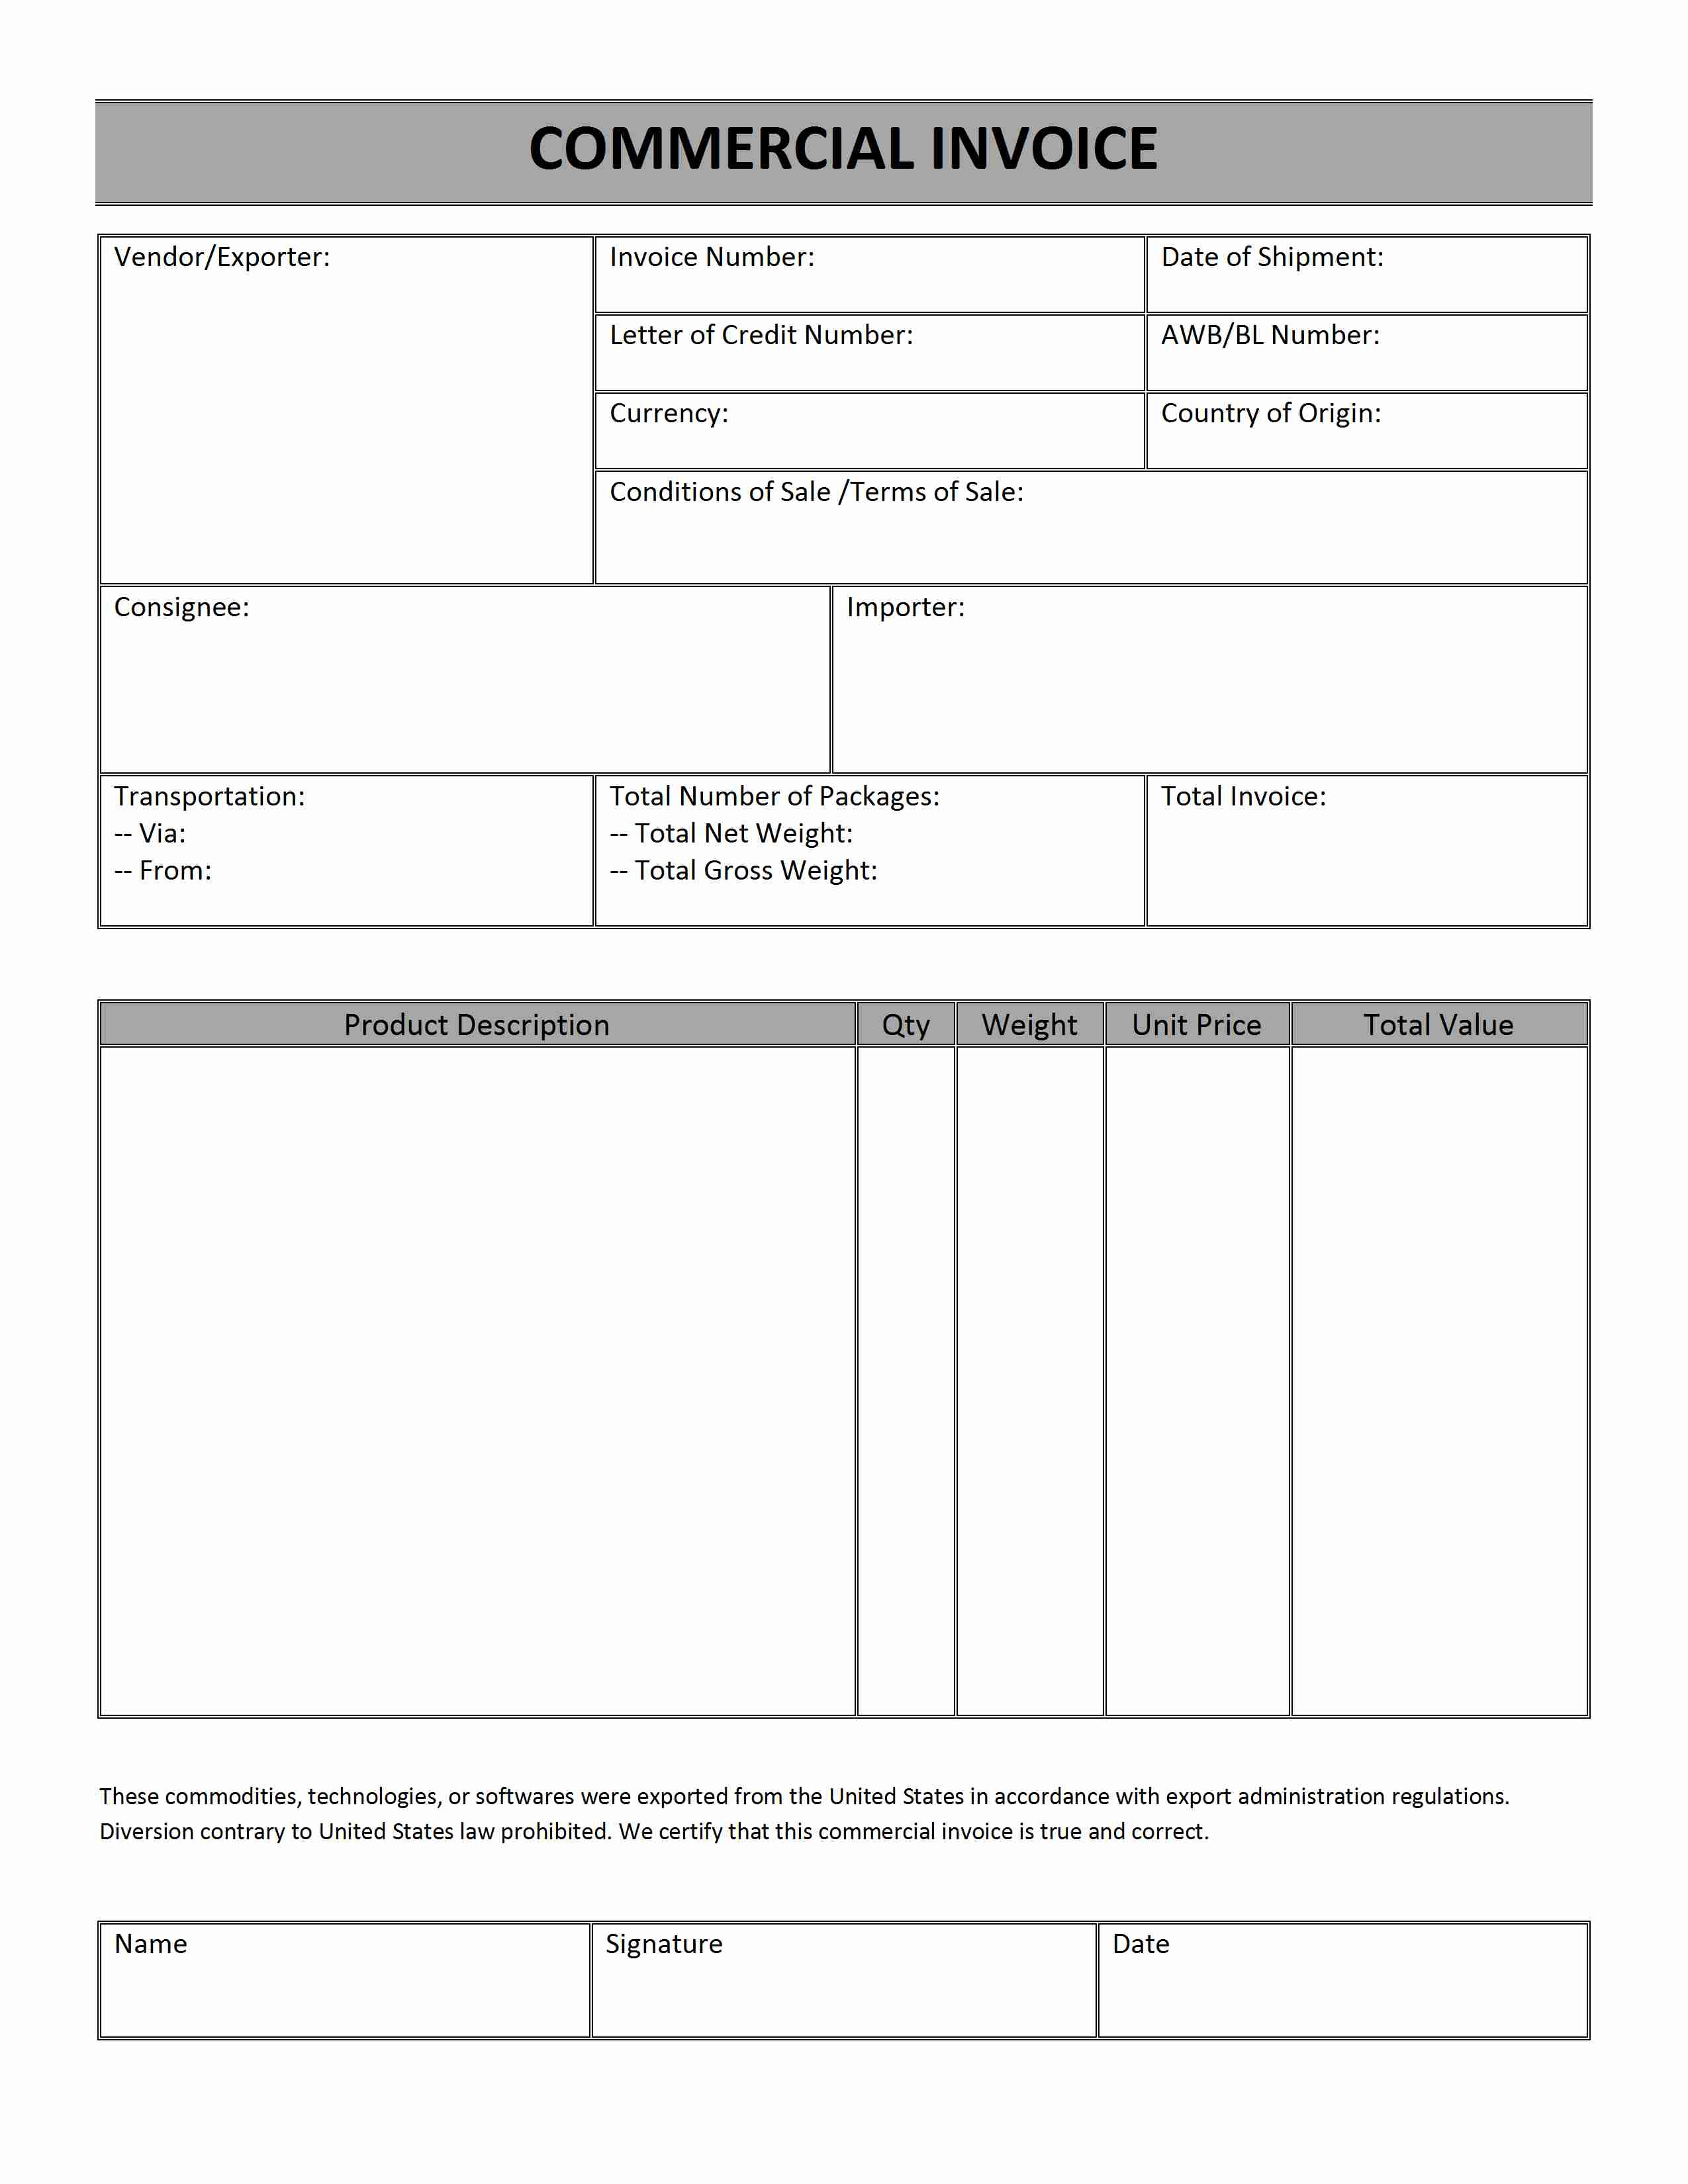 Breakupus  Outstanding Printable Sales Invoice Simple Invoice Form Free Invoice  With Engaging Printable Receipt Free  Free Printable Raffle Tickets  Receipt   Printable With Divine Define Gross Receipts Also Annual Gross Receipts In Addition Read Receipt For Gmail And Us Airways Receipts As Well As Print A Receipt Additionally Read Receipt Imessage From Happytomco With Breakupus  Engaging Printable Sales Invoice Simple Invoice Form Free Invoice  With Divine Printable Receipt Free  Free Printable Raffle Tickets  Receipt   Printable And Outstanding Define Gross Receipts Also Annual Gross Receipts In Addition Read Receipt For Gmail From Happytomco